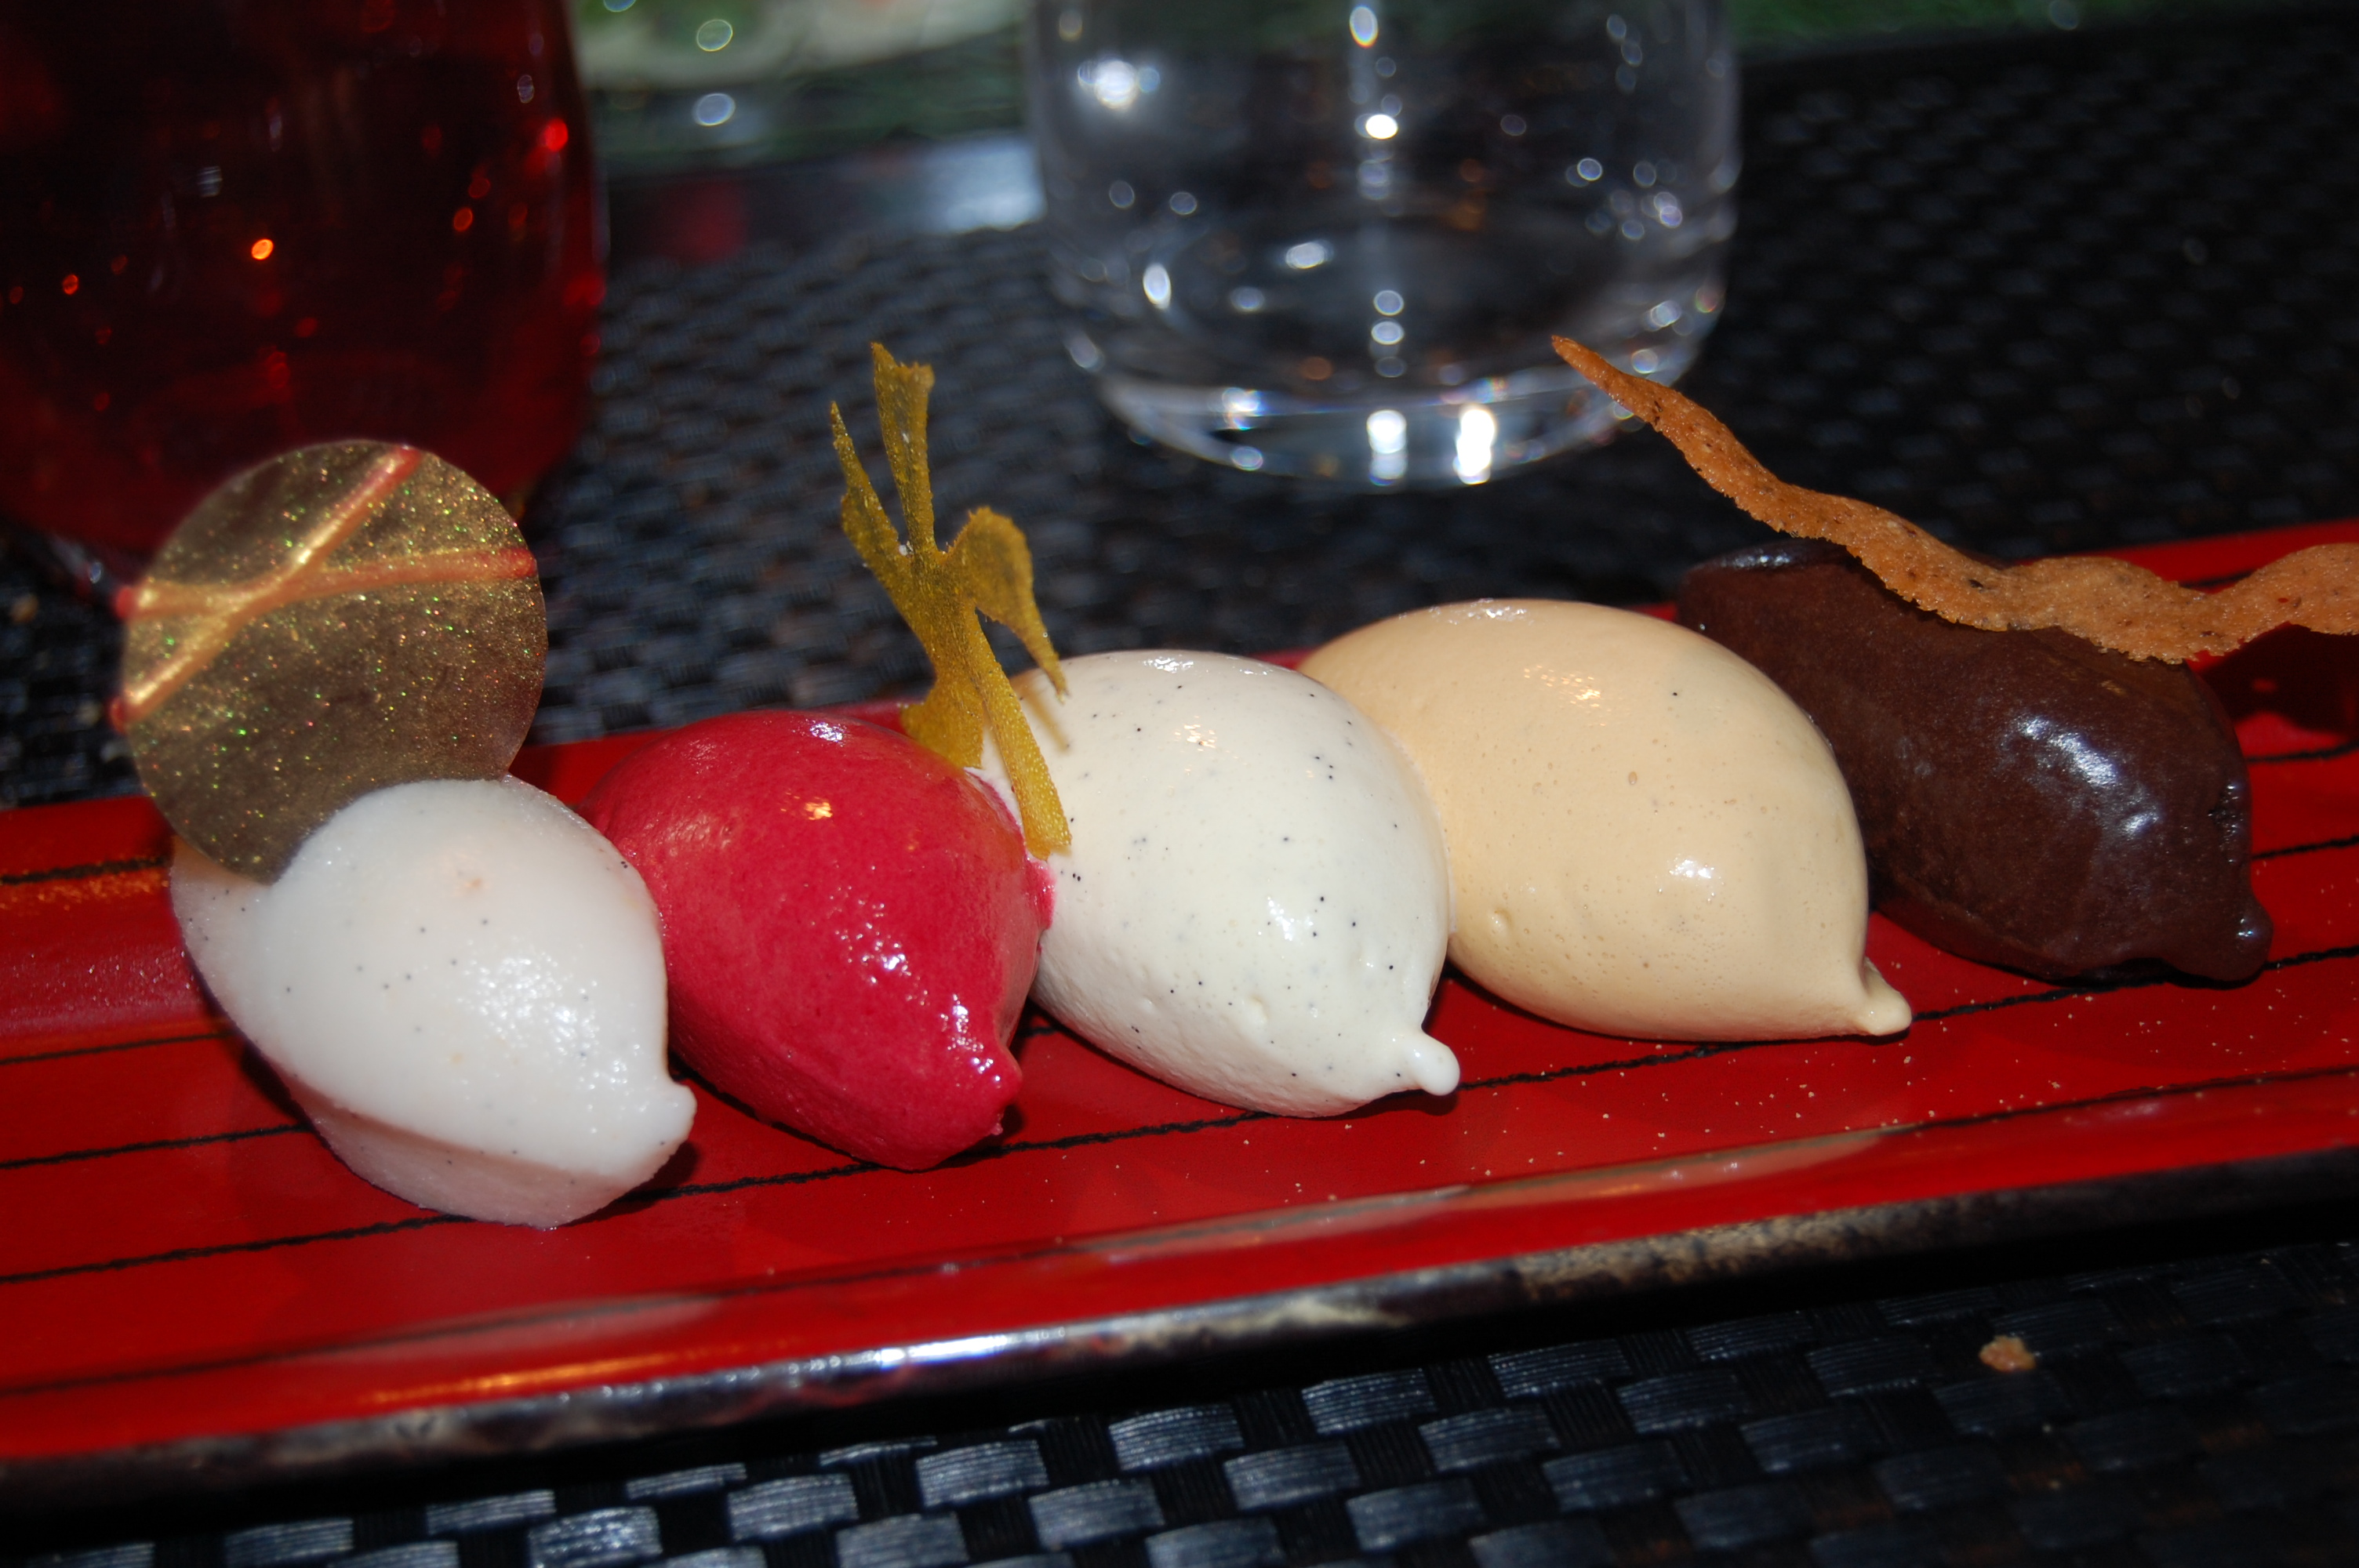 Other highlight of the '09 trip: Upon friend's insistence, we went to L'Atelier de Joël Robuchon. I'm afraid the subtleties of the $300 tasting menu were mostly lost on us after the $18 Eiffel-arita.